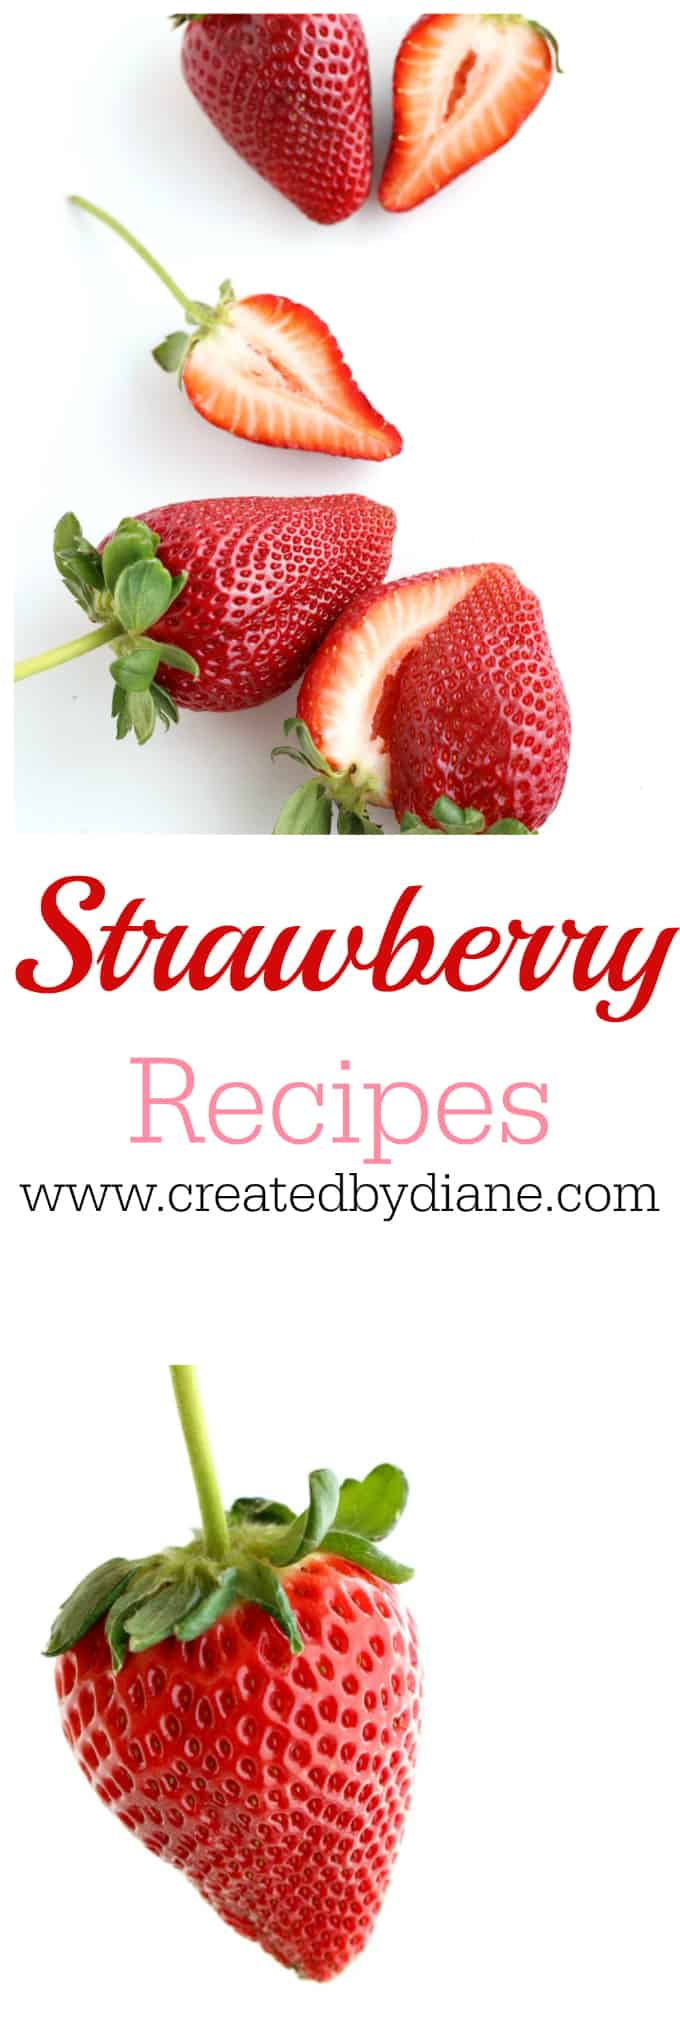 strawberry recipes www.createdbydiane.com